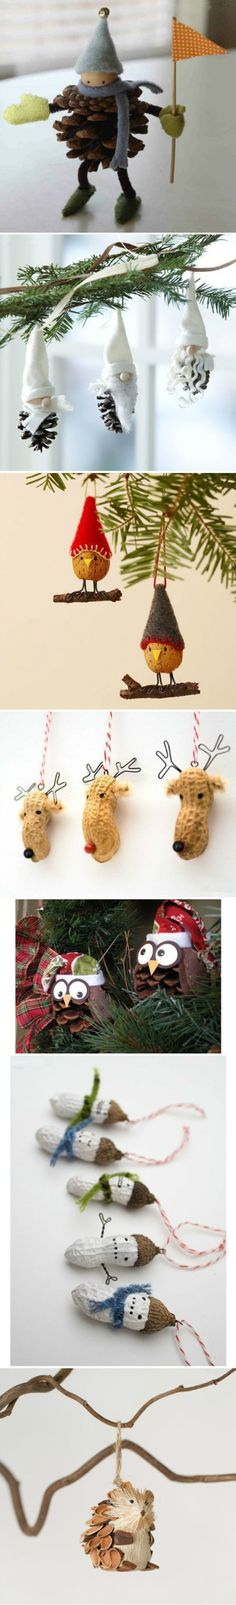 Make 1000 ideas for Christmas decorations – Christmas crafts – Alleideen 1 – Christmas Ideas Noel Christmas, Homemade Christmas, Christmas Projects, Winter Christmas, All Things Christmas, Holiday Crafts, Holiday Fun, Christmas Ornaments, Diy Ornaments